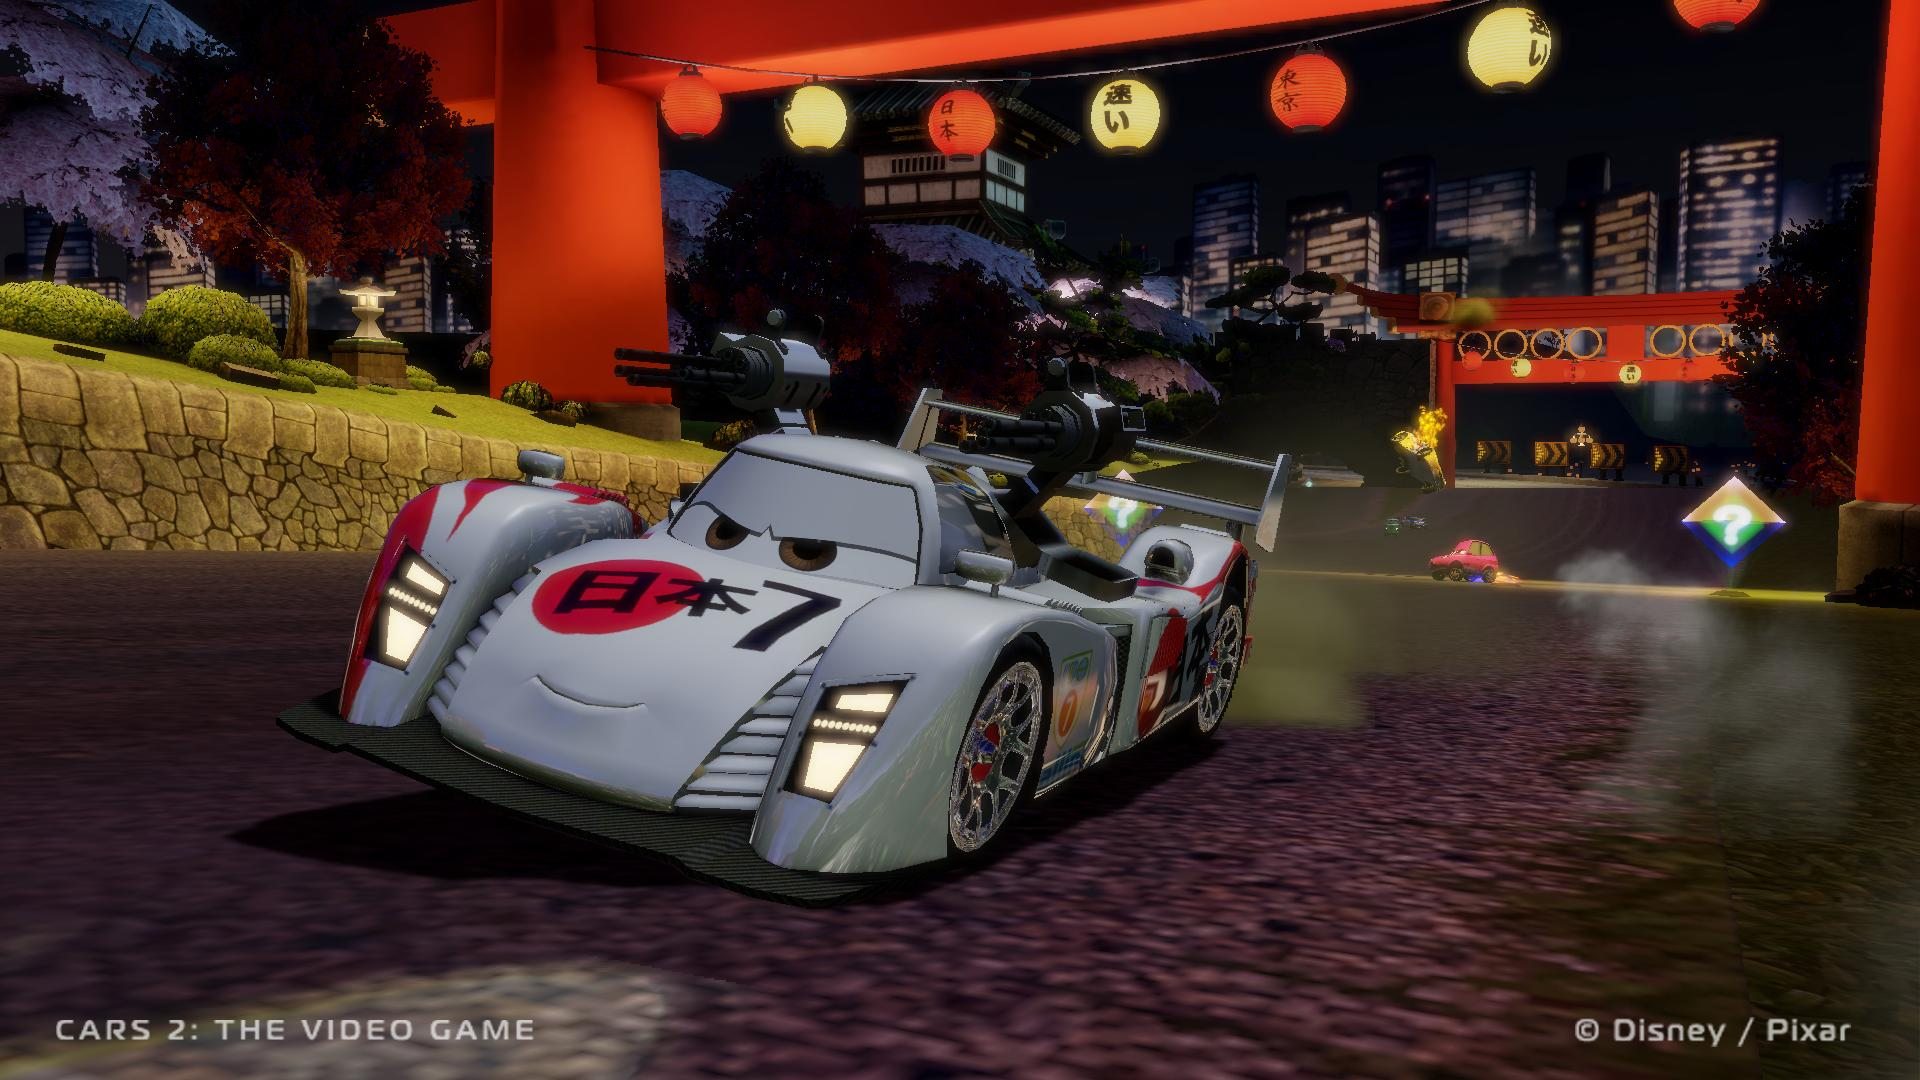 Cars 2 Video Game Set To Impress